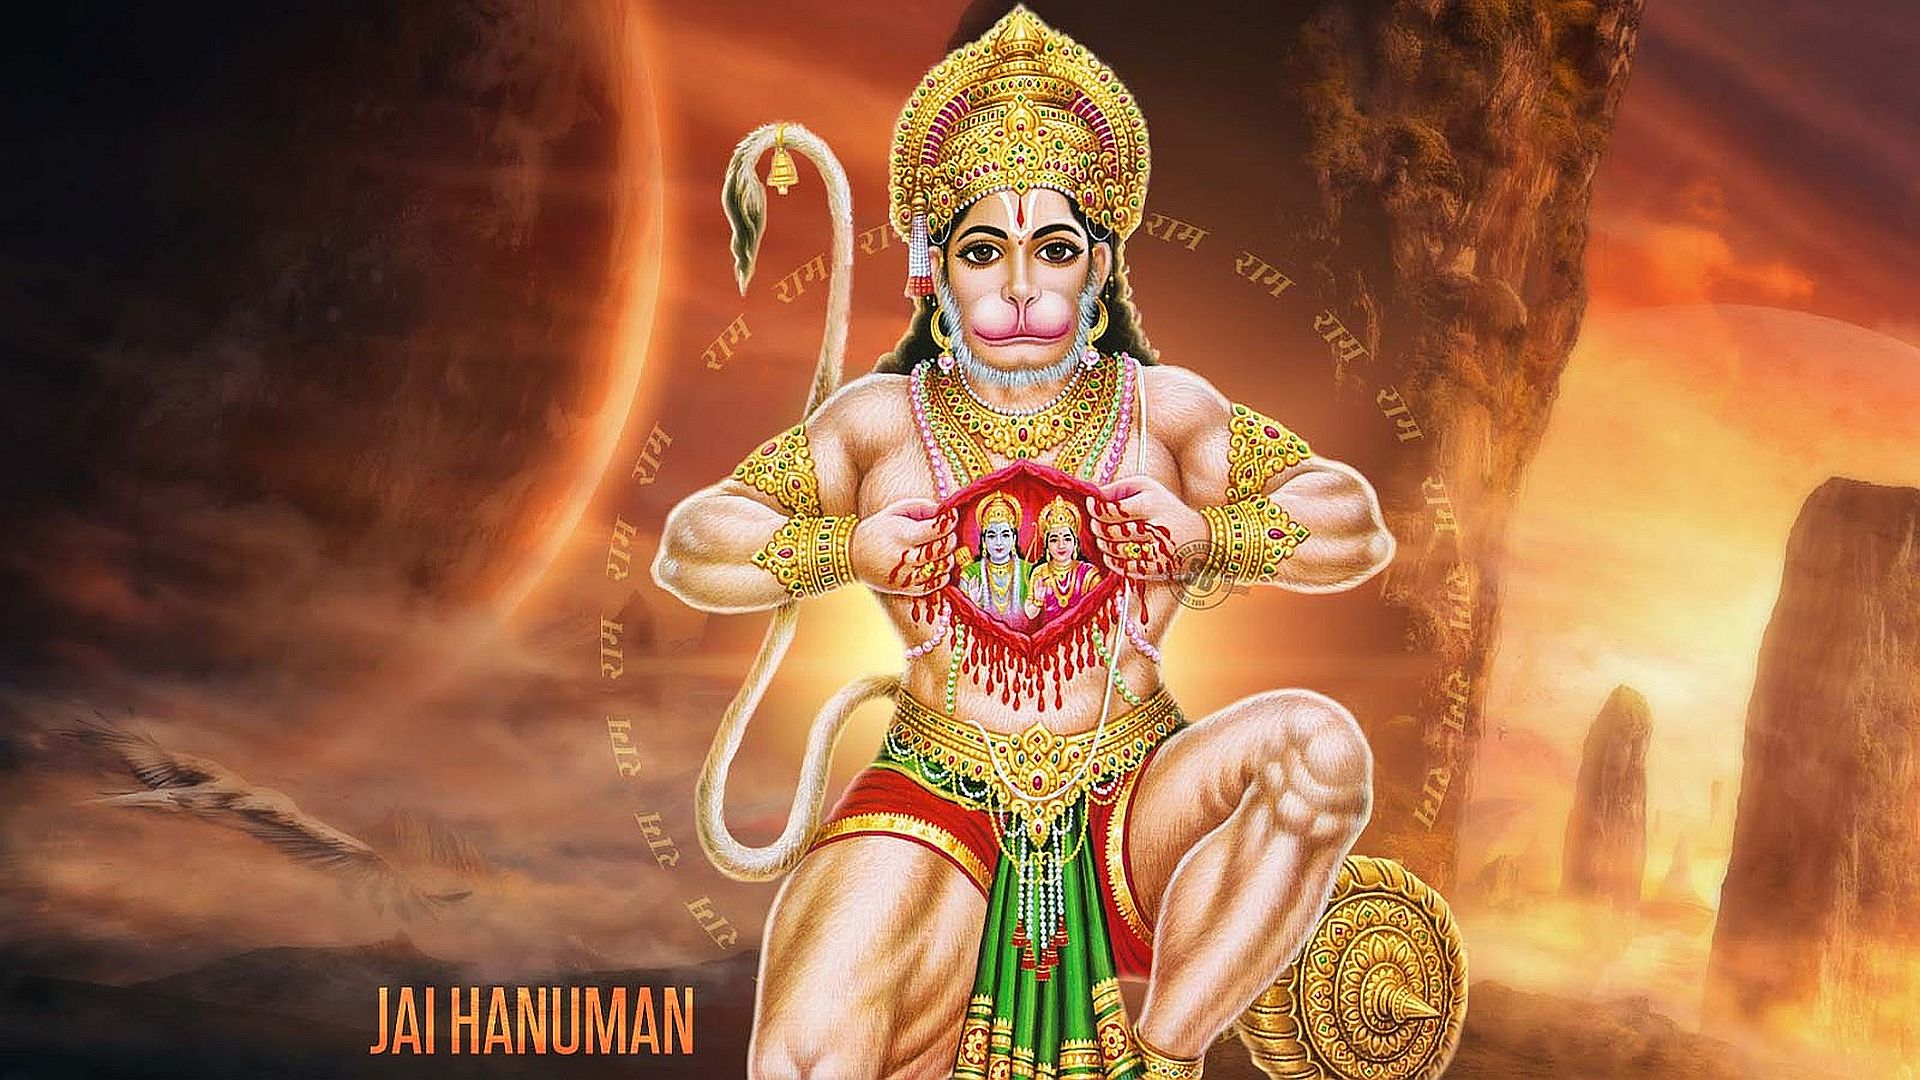 Bajrangbali Wallpaper Full Size Hindu Gods And Goddesses